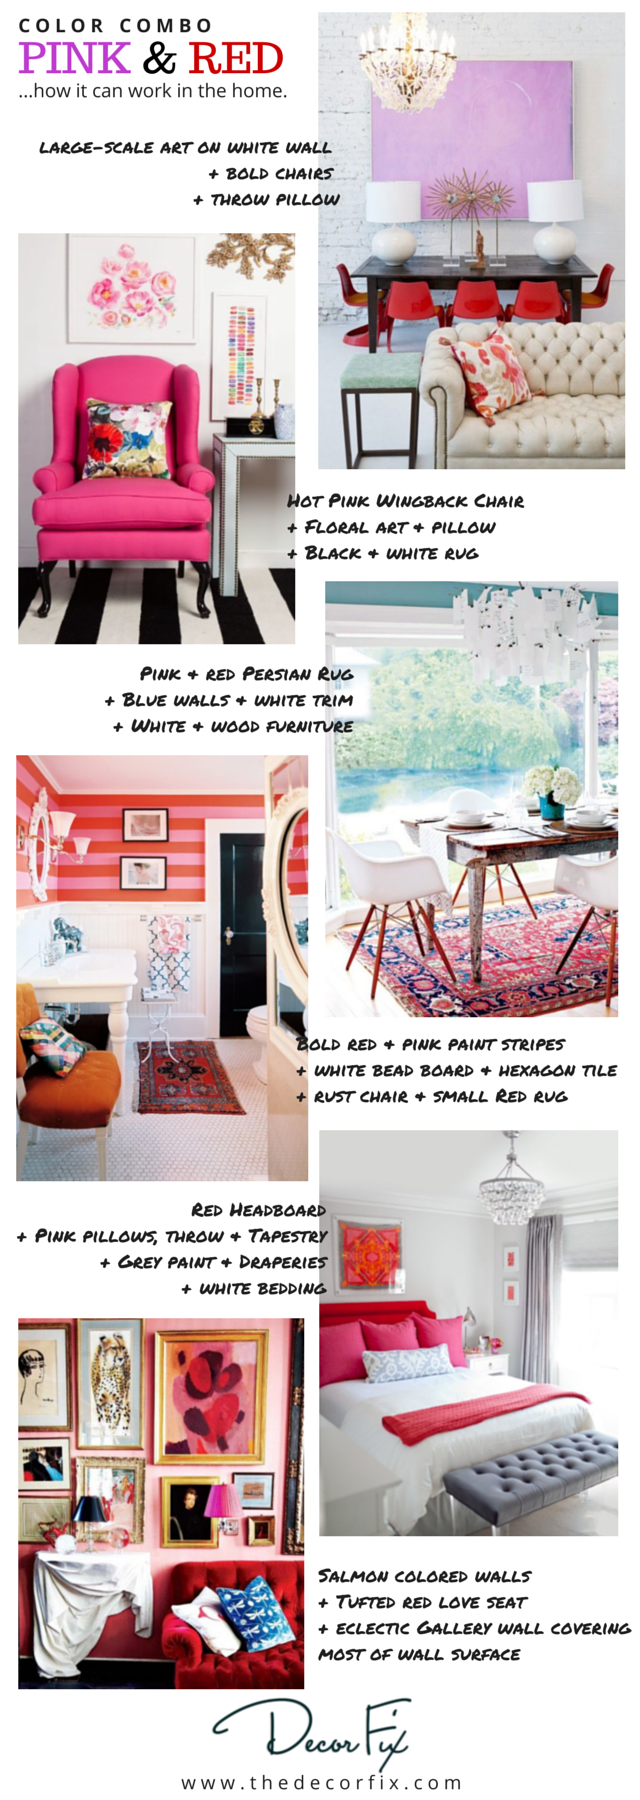 PINK & RED Interiors